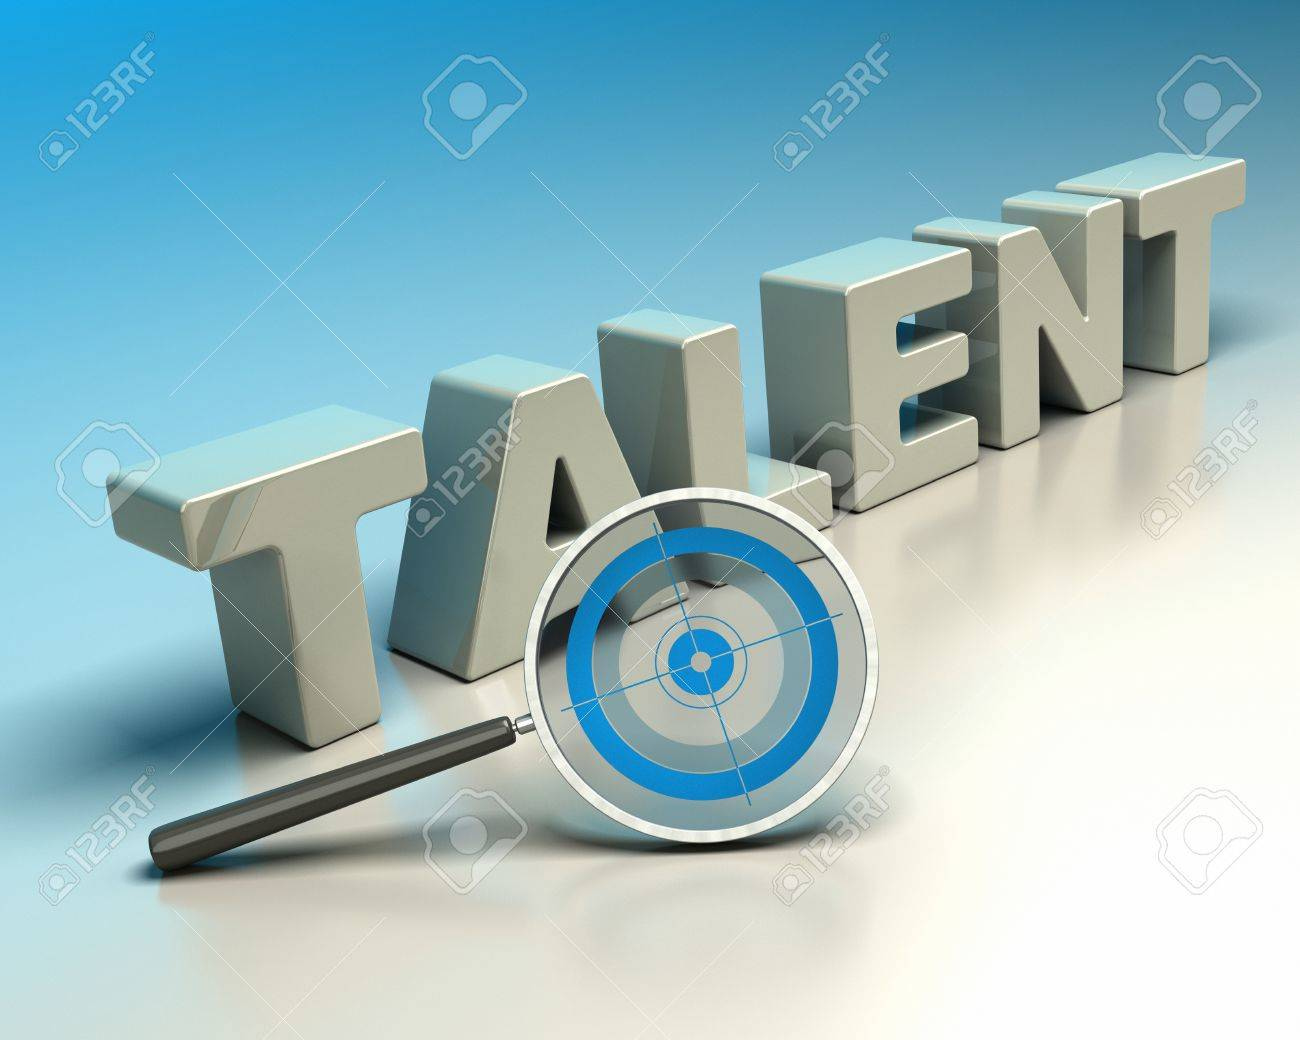 Word talent written with 3d letters onto a blue and beige background with a magnifier including a blue target  symbol of headhunter Stock Photo - 16803472